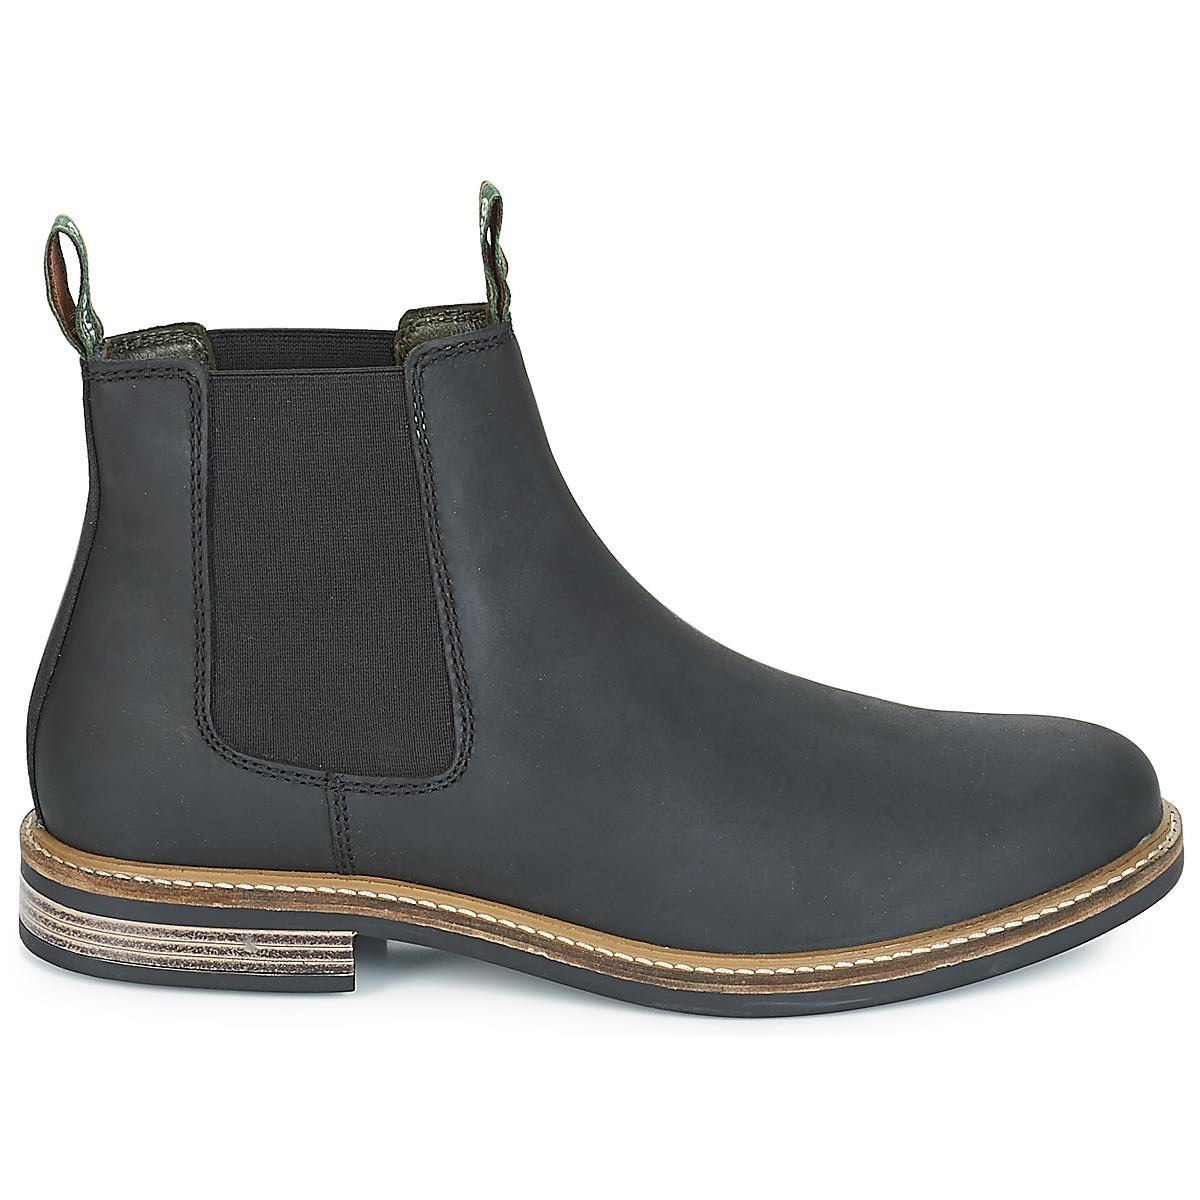 55e3401c273 Barbour Farsley Mid Boots in Black for Men - Lyst